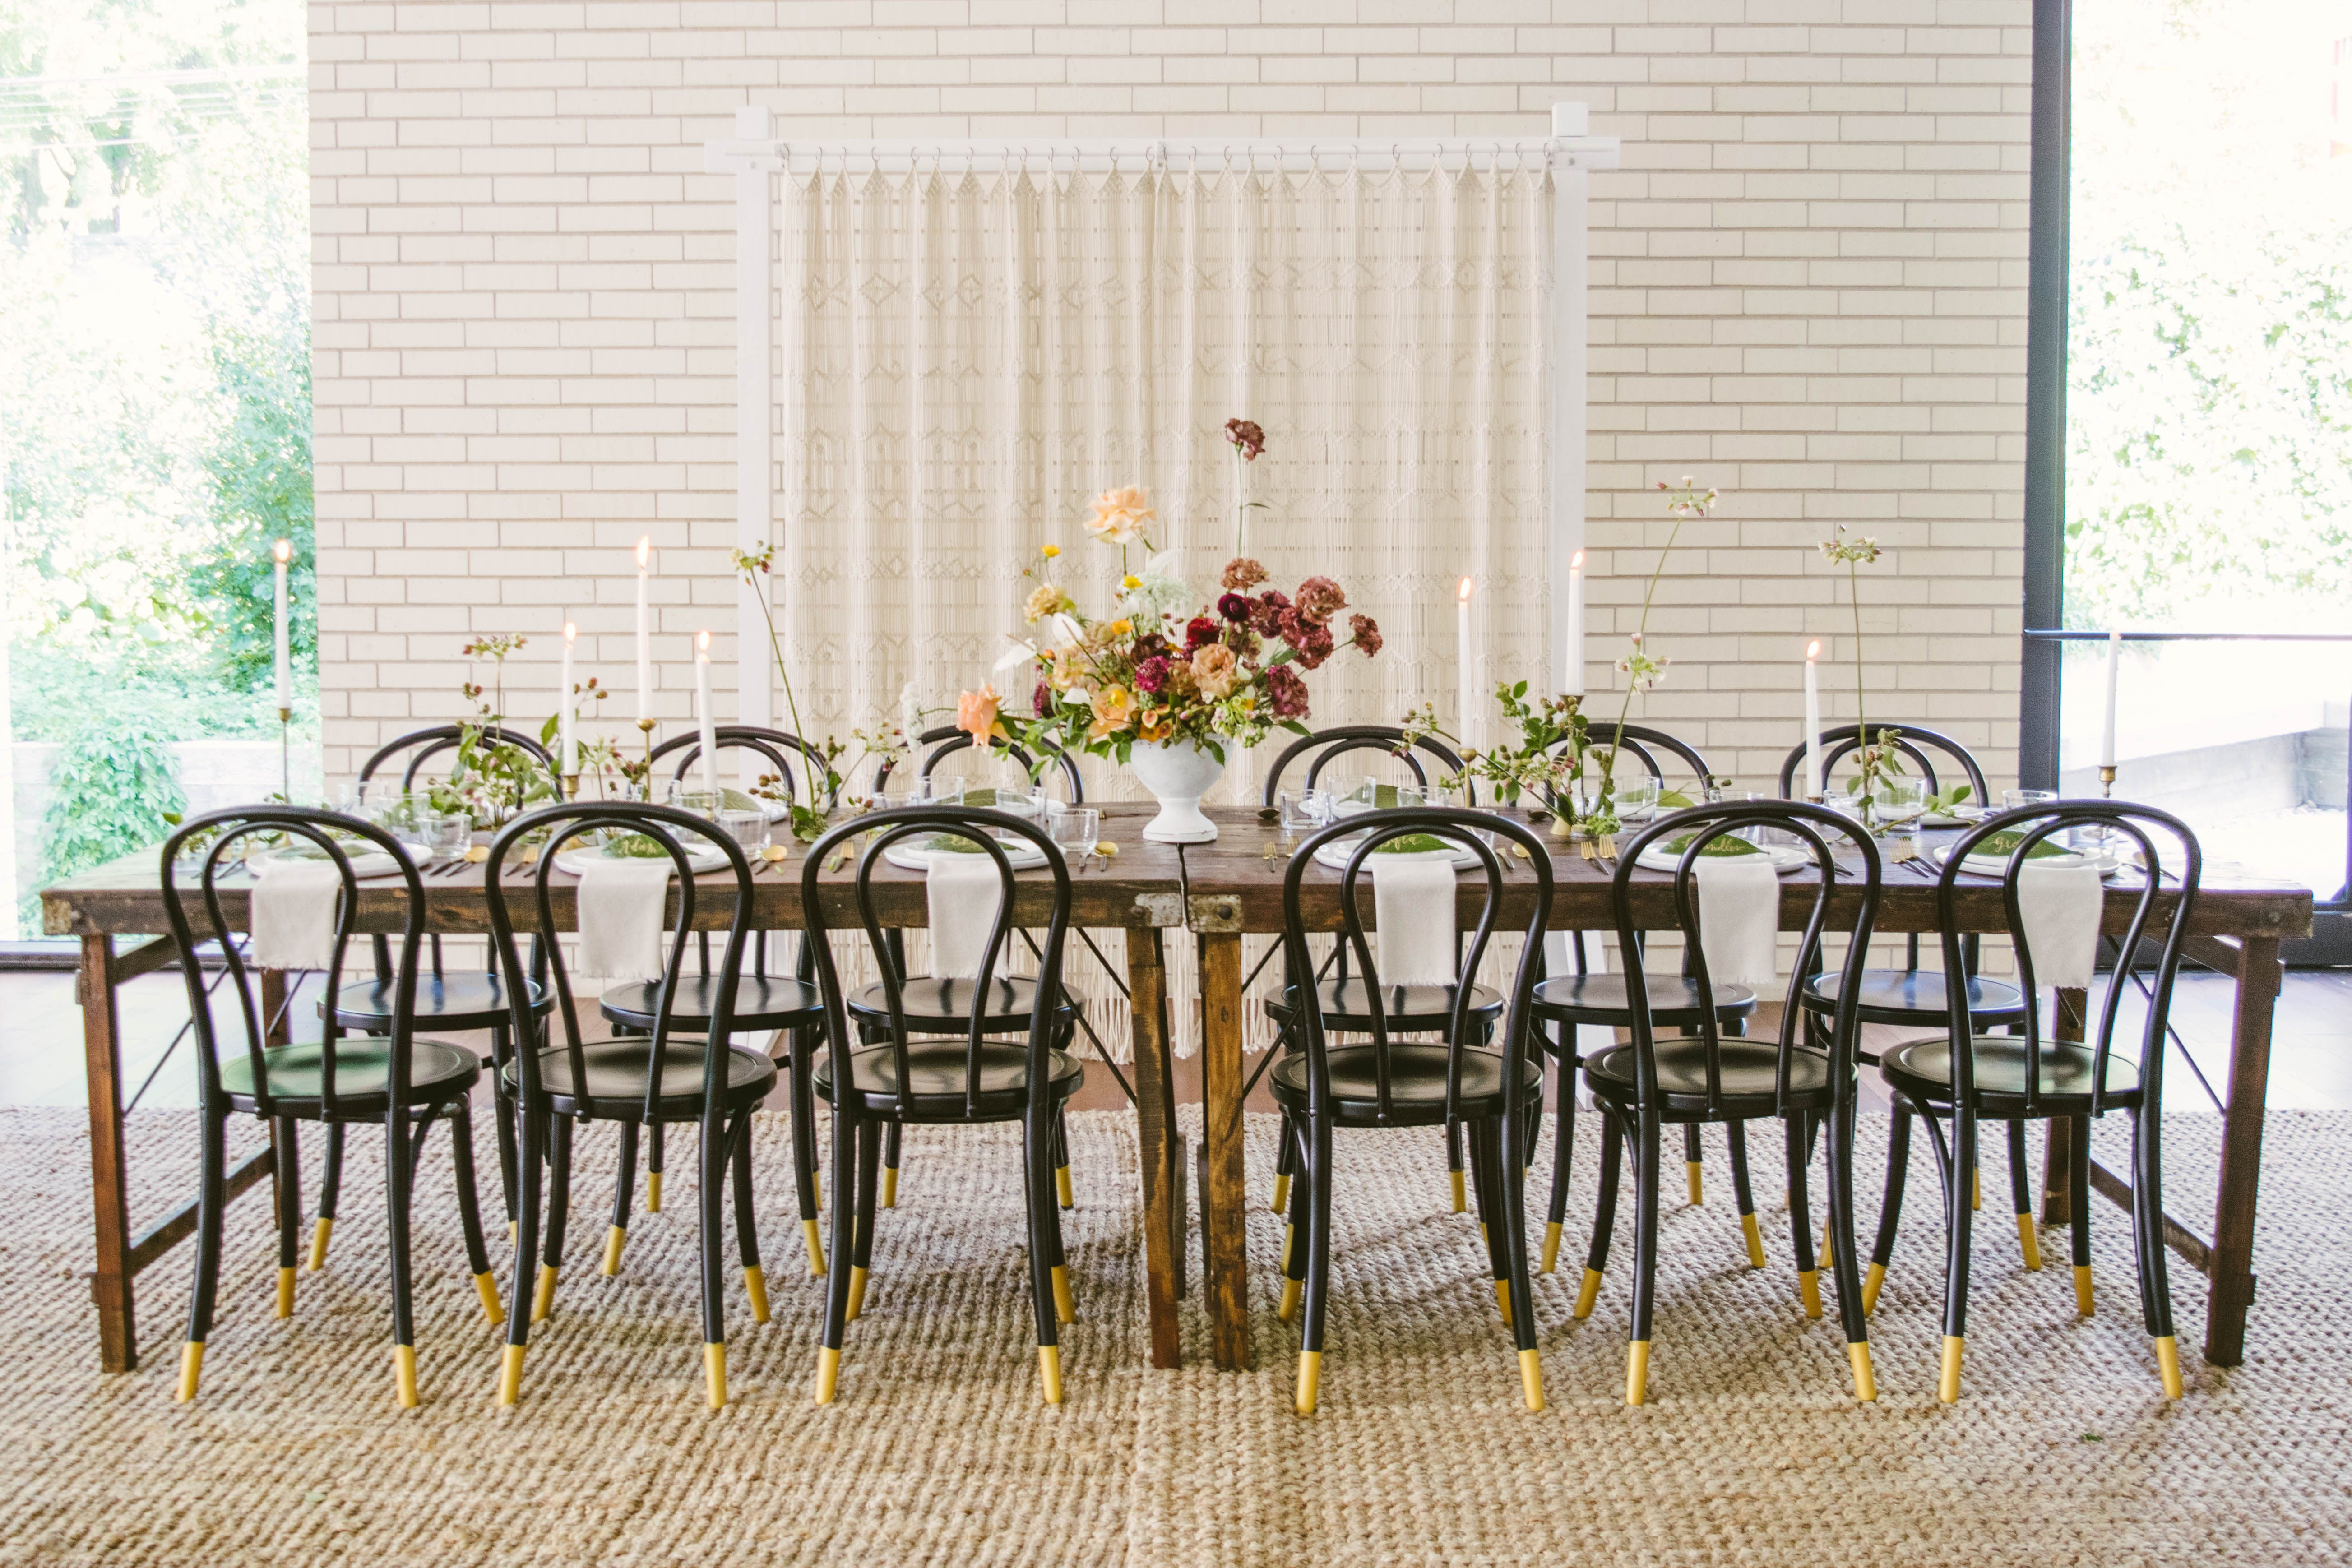 Bohemian Chic Wedding Dining Table Rustic Farm Tables With Black And Gold Bistro Chairs Over Neutral Seag Dining Table Rustic Rustic Farm Table Eclectic Rugs